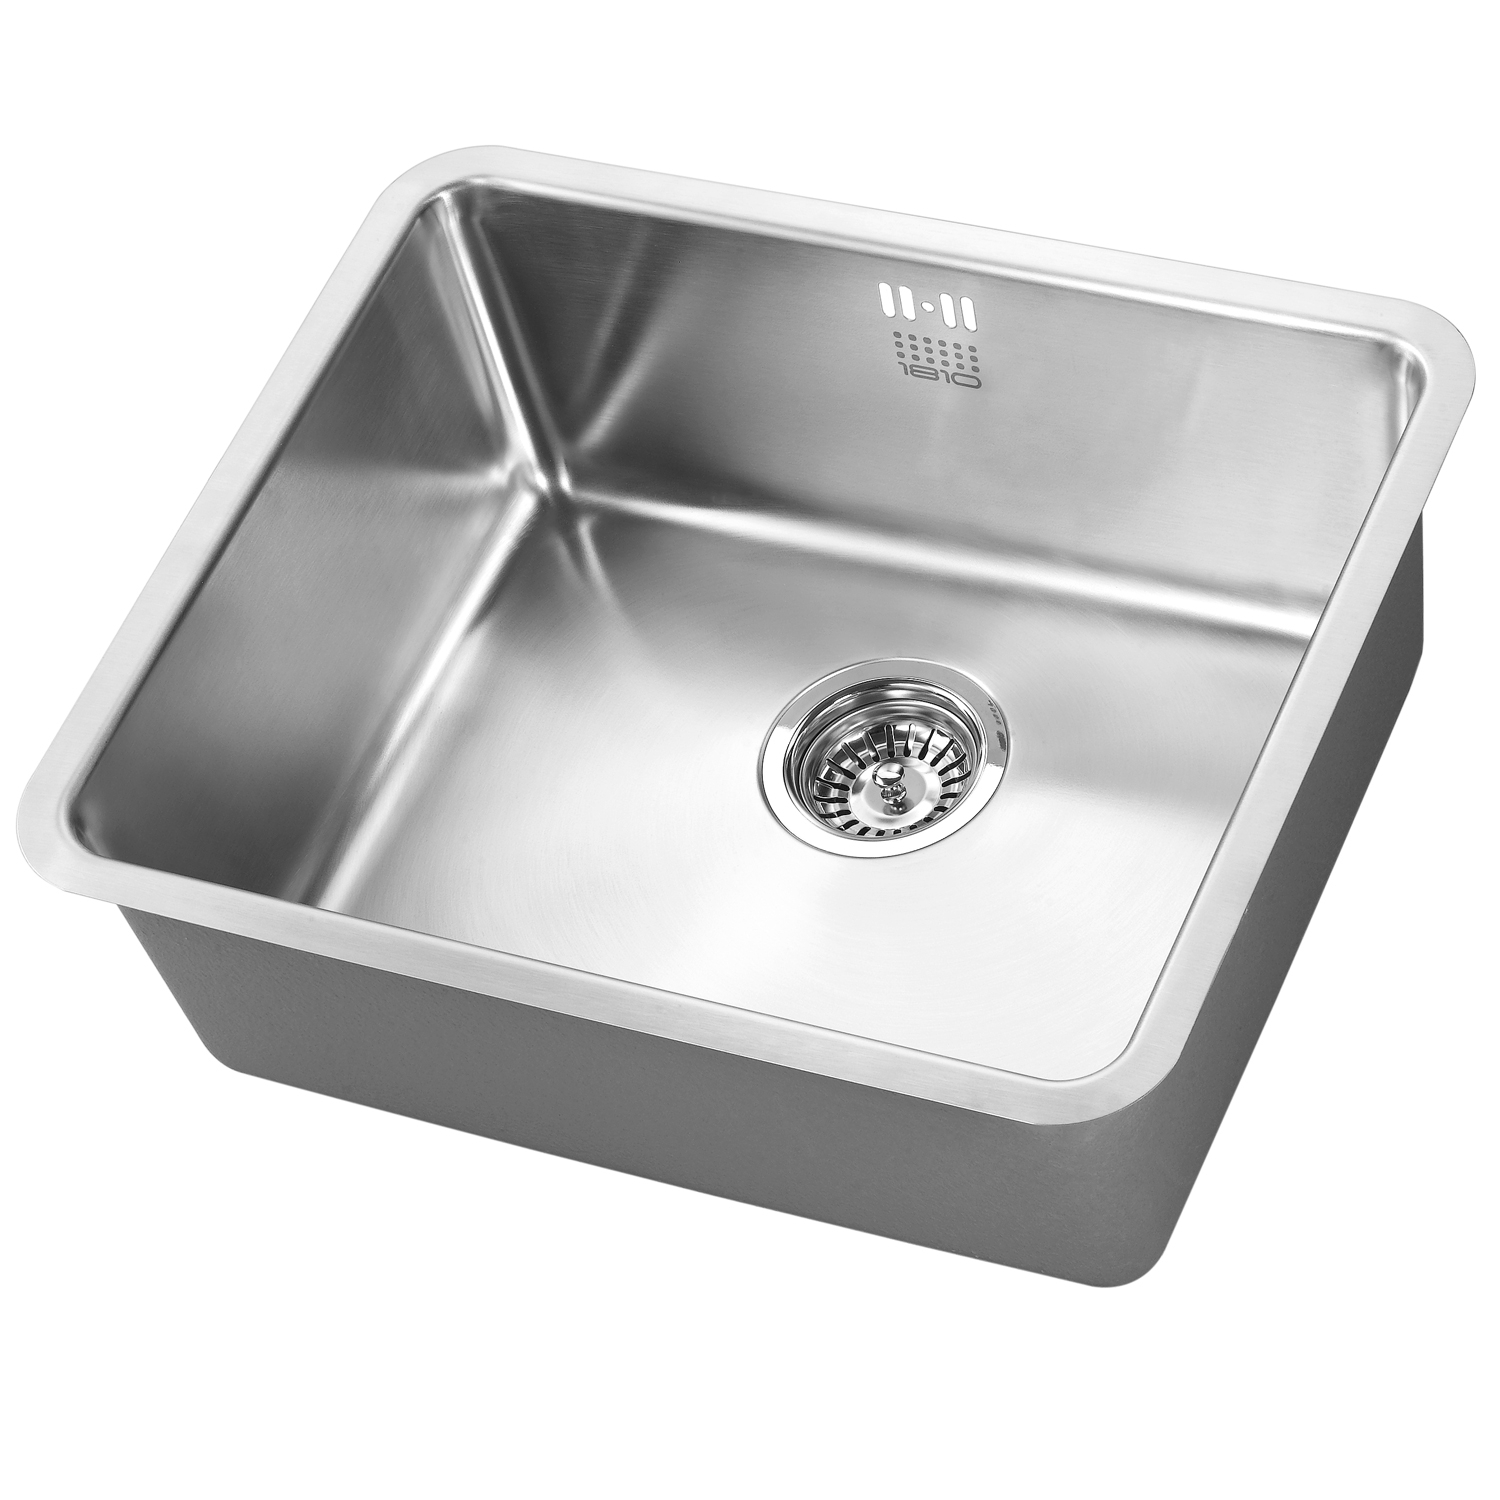 The 1810 Company Luxsouno25 480U 1.0 Bowl Kitchen Sink - Stainless Steel-0